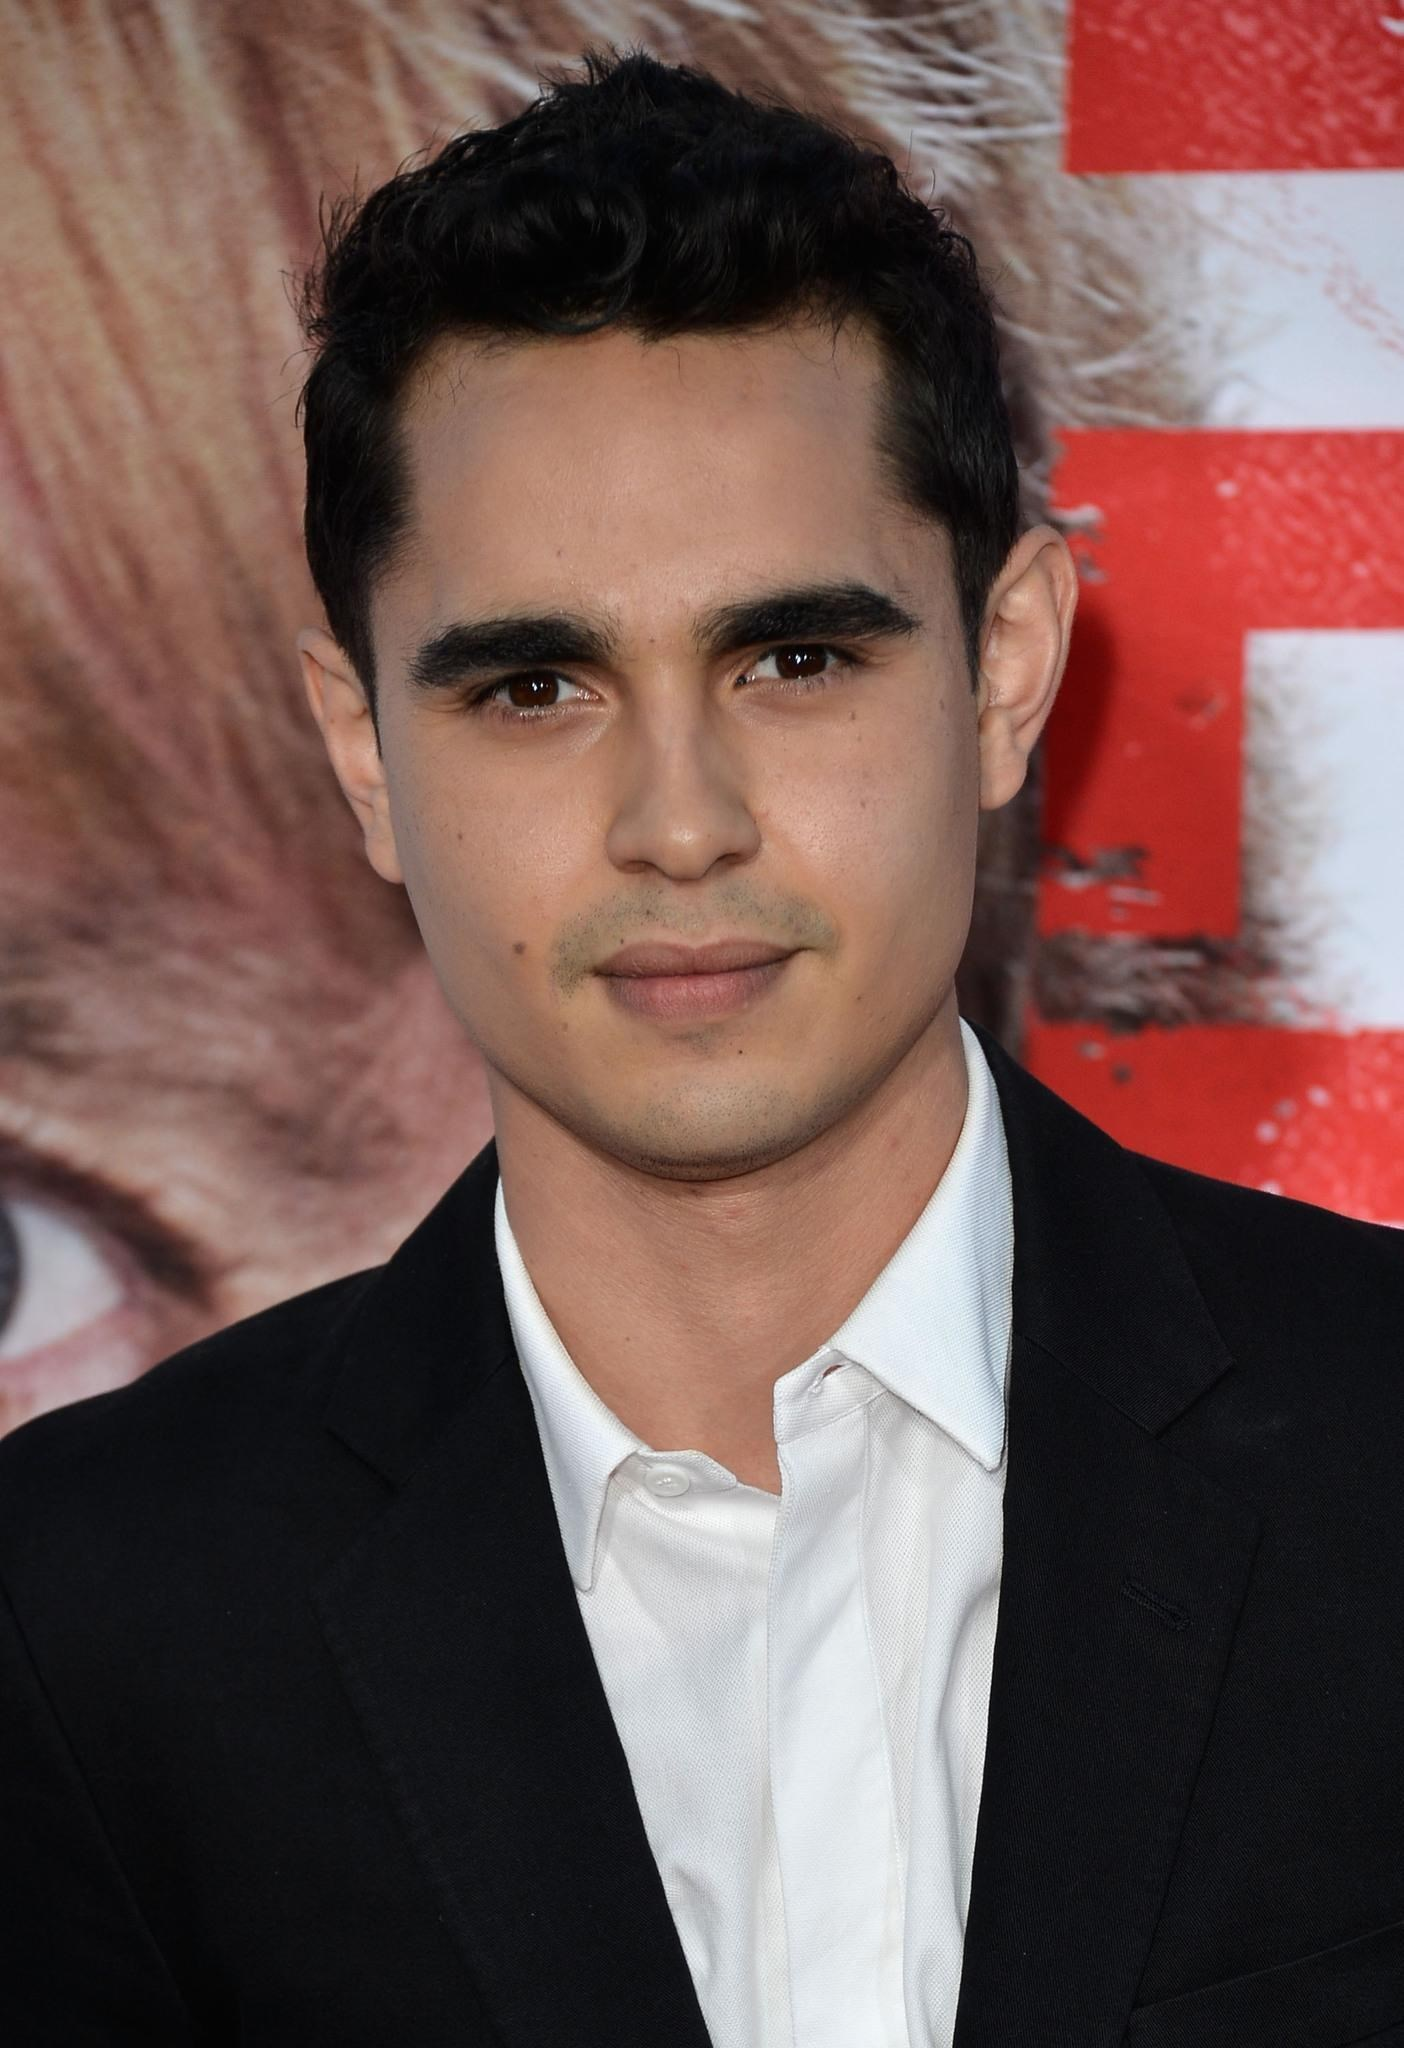 Wallpaper Girl With The Dragon Tattoo Max Minghella Known People Famous People News And